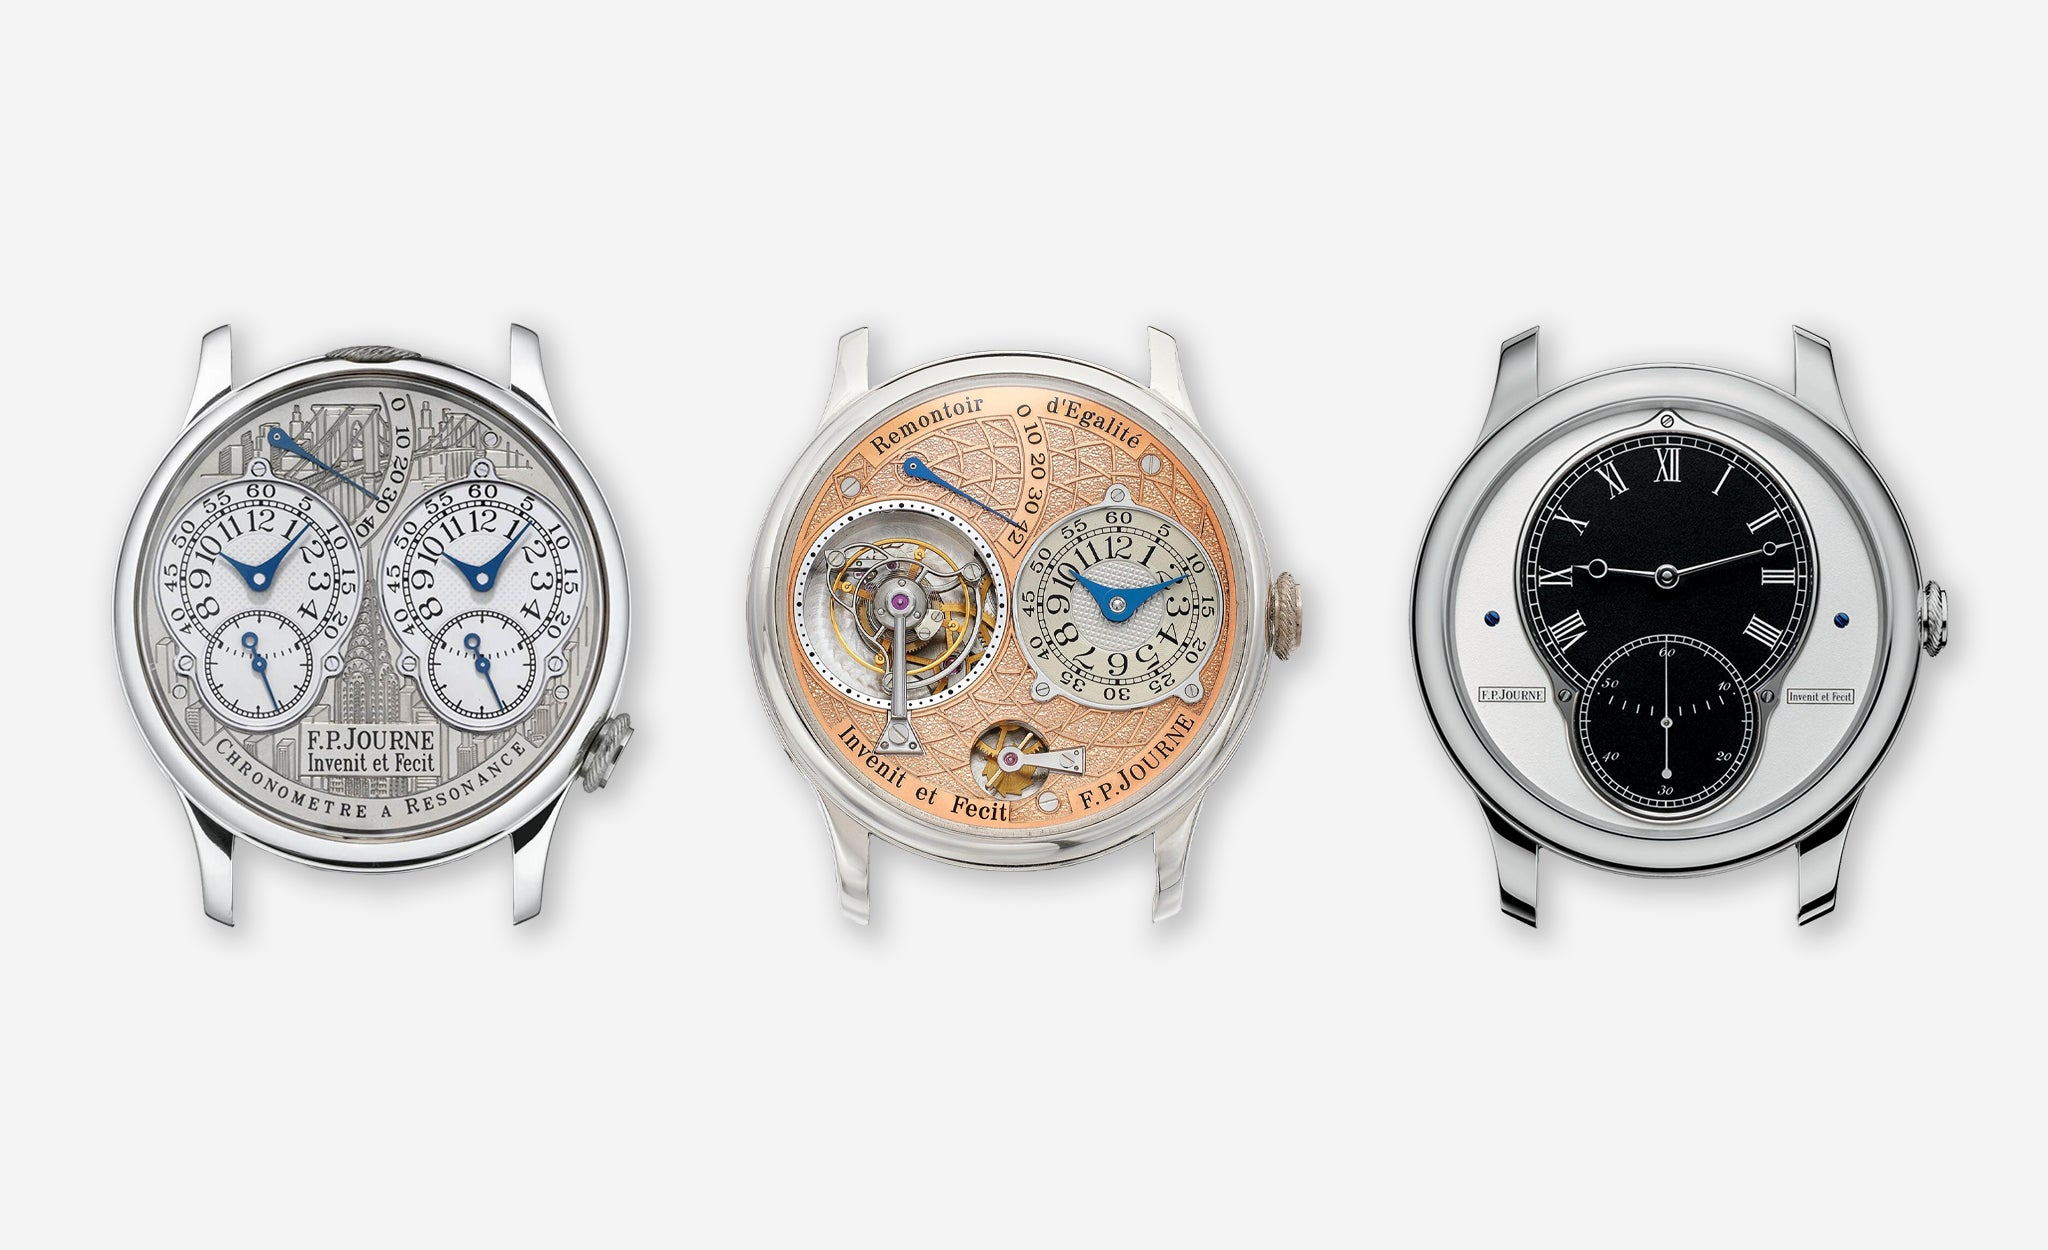 New York, labyrinth and T10 special editions produced by F.P. Journe